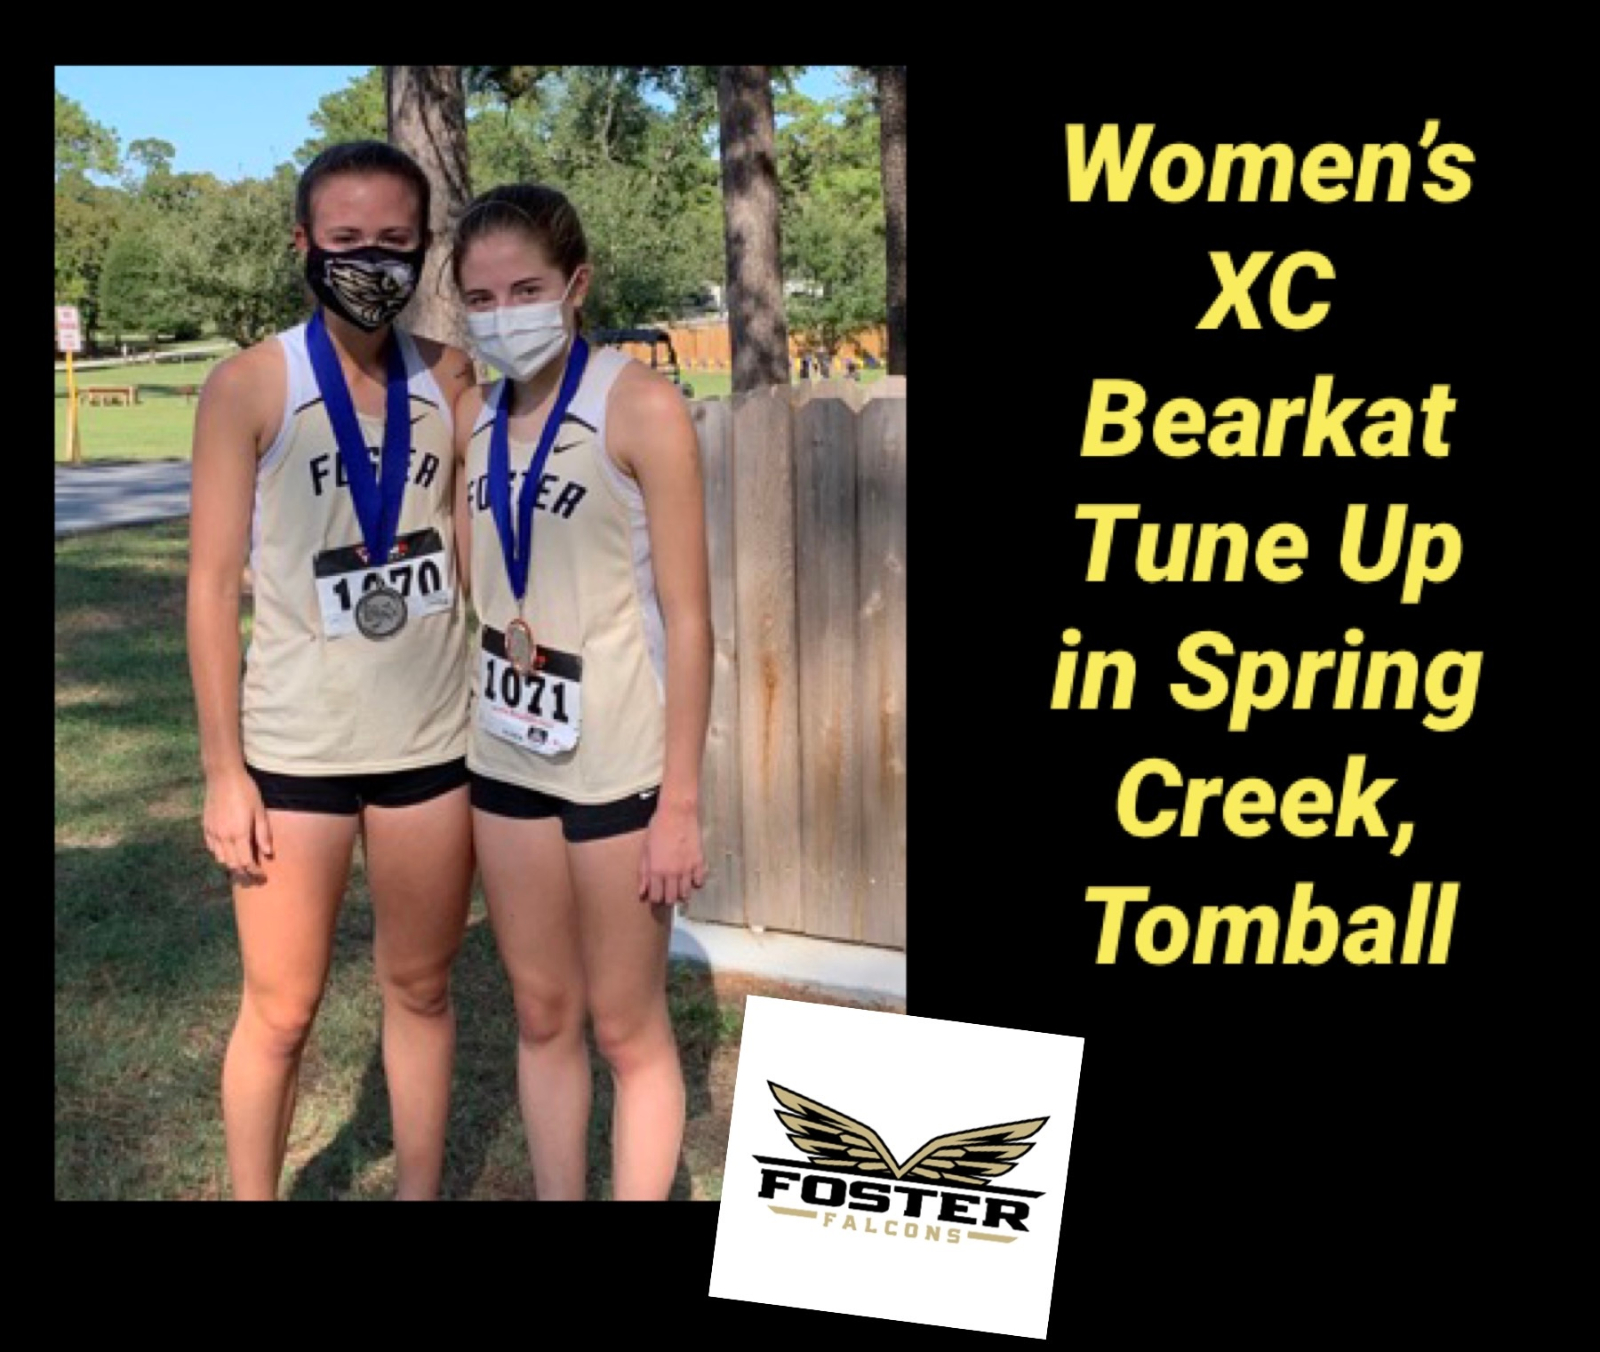 Women's XC Bearkat Tune Up Spring Creek Park, Tomball